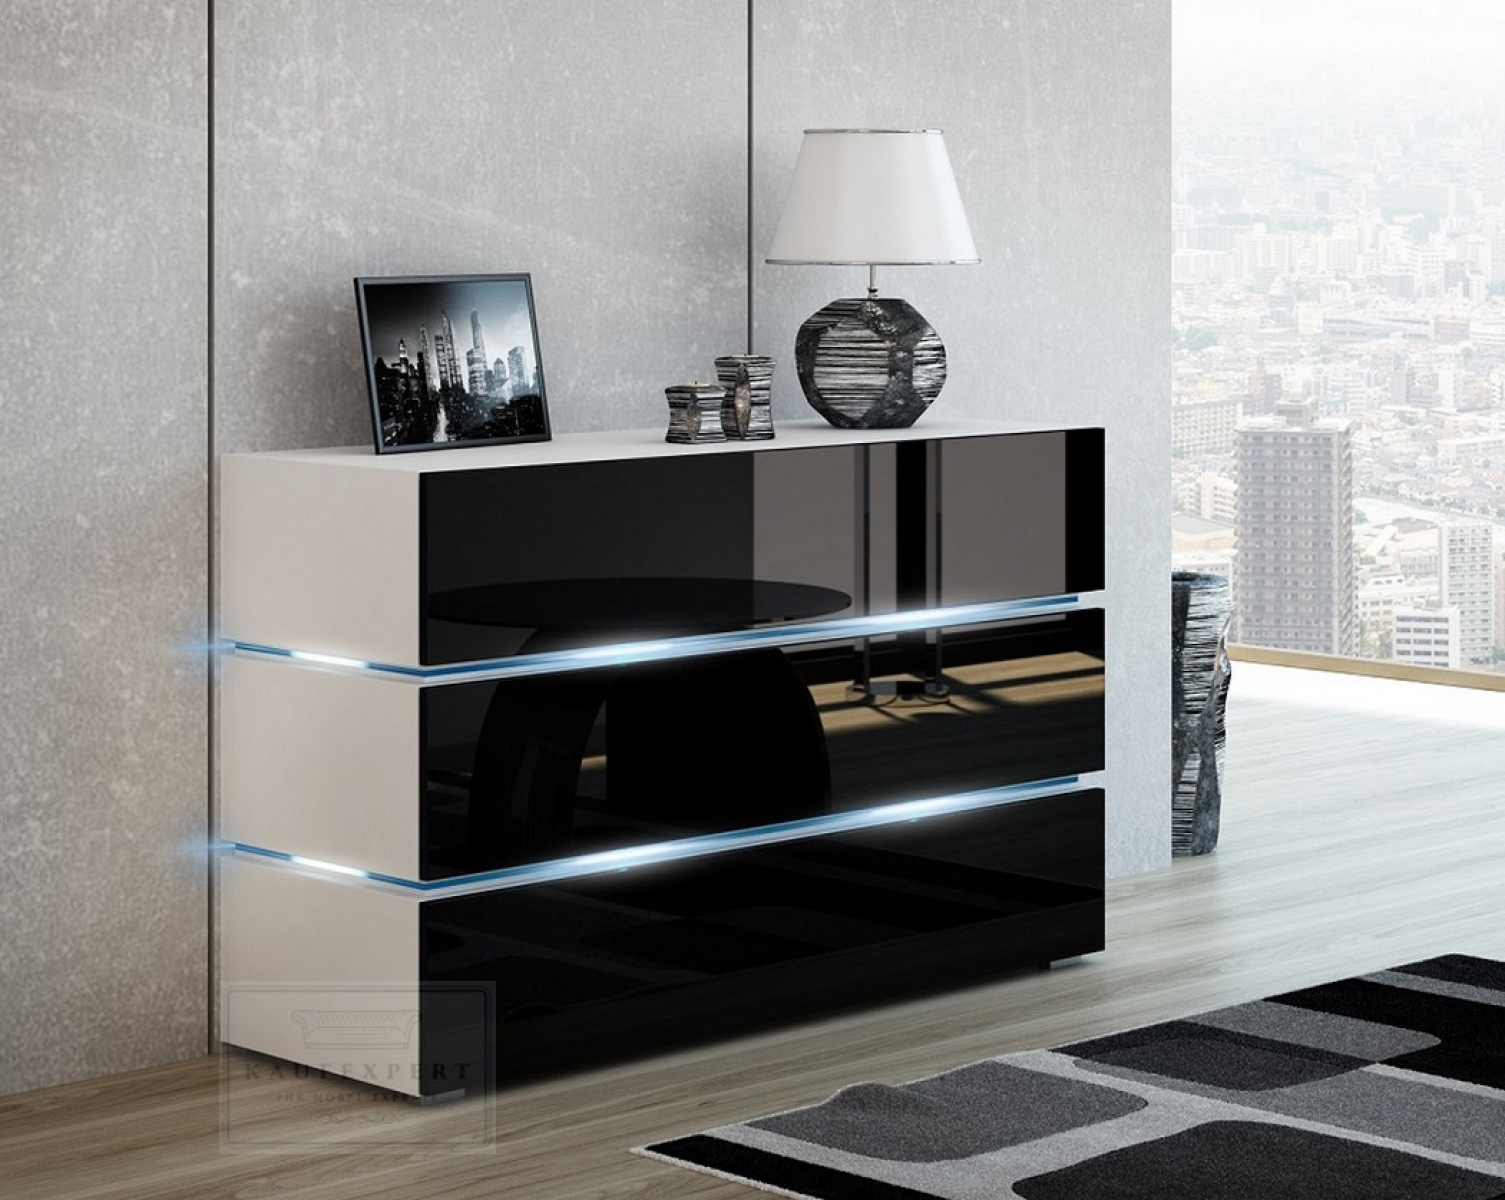 kaufexpert kommode shine sideboard 120 cm schwarz hochglanz wei led beleuchtung modern design. Black Bedroom Furniture Sets. Home Design Ideas